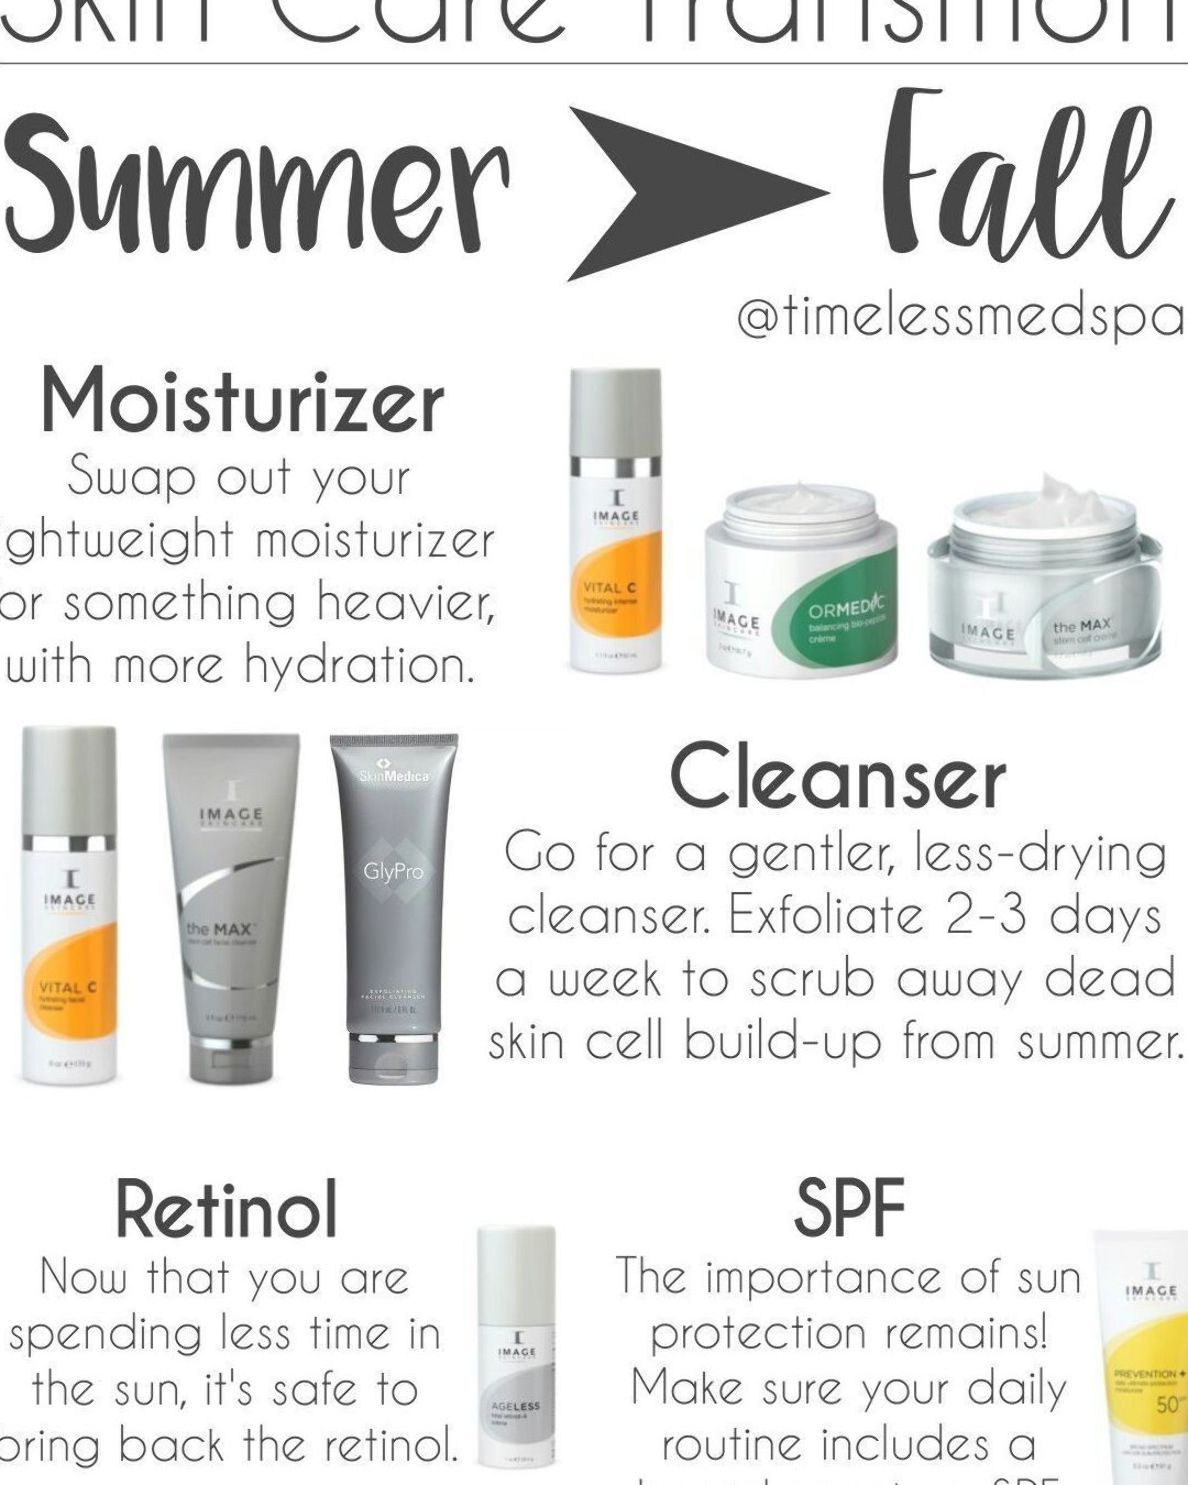 Tips To Transition Your Skin Care Routine From Summer To Fall Skincare Skin Imageskincare Nothingbut In 2020 Autumn Skincare Image Skincare Best Skin Care Routine